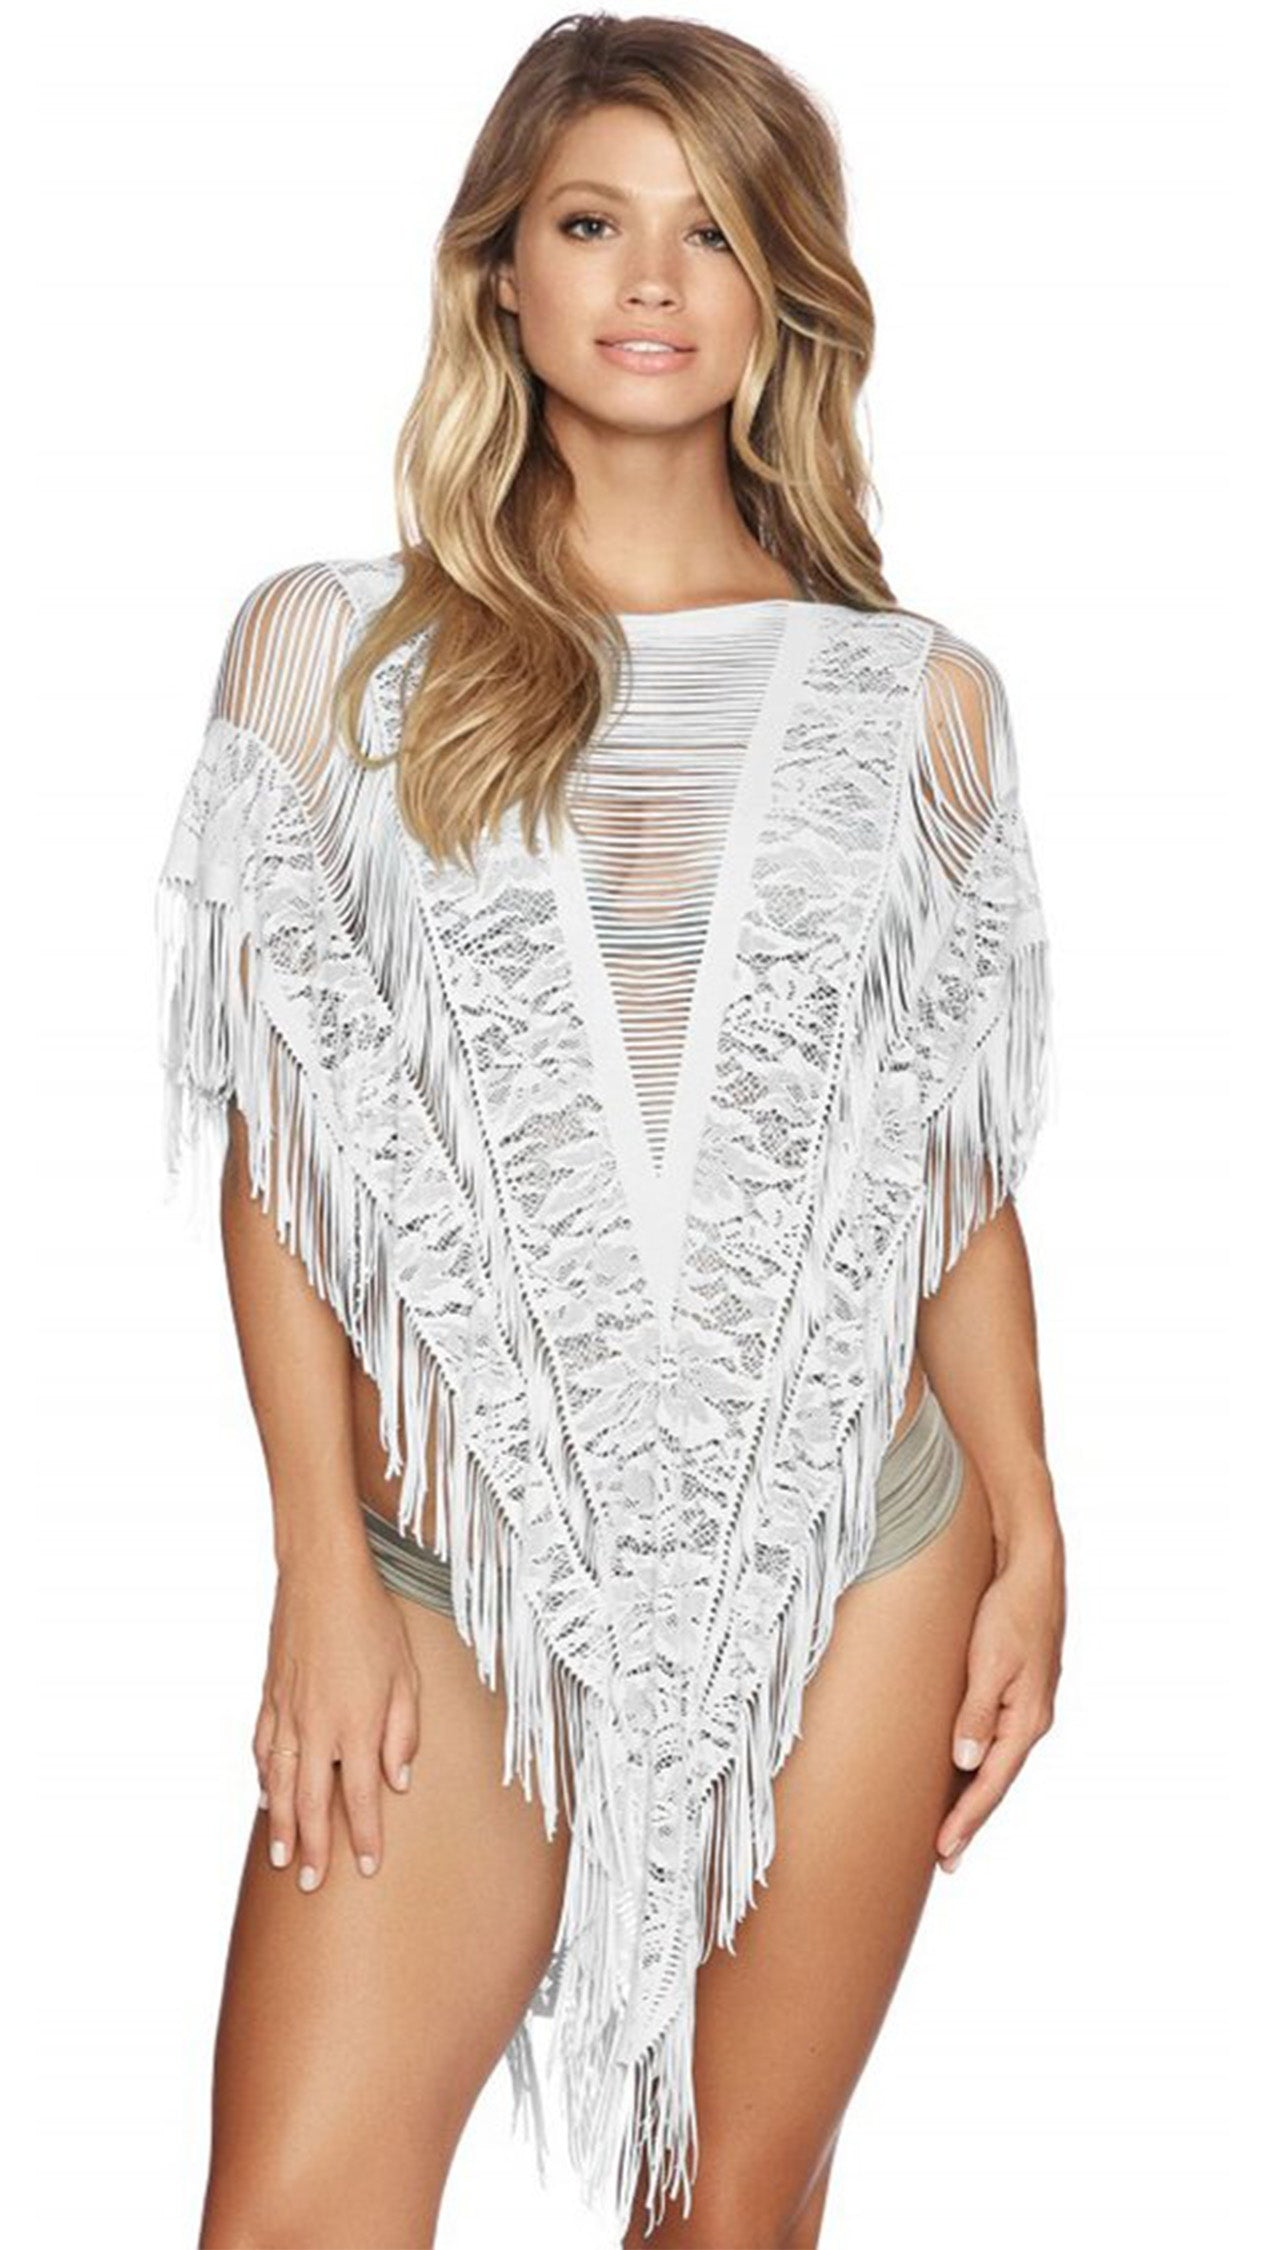 Indian Summer Poncho in White Floral Lace Stripe Beach Bunny Swimwear